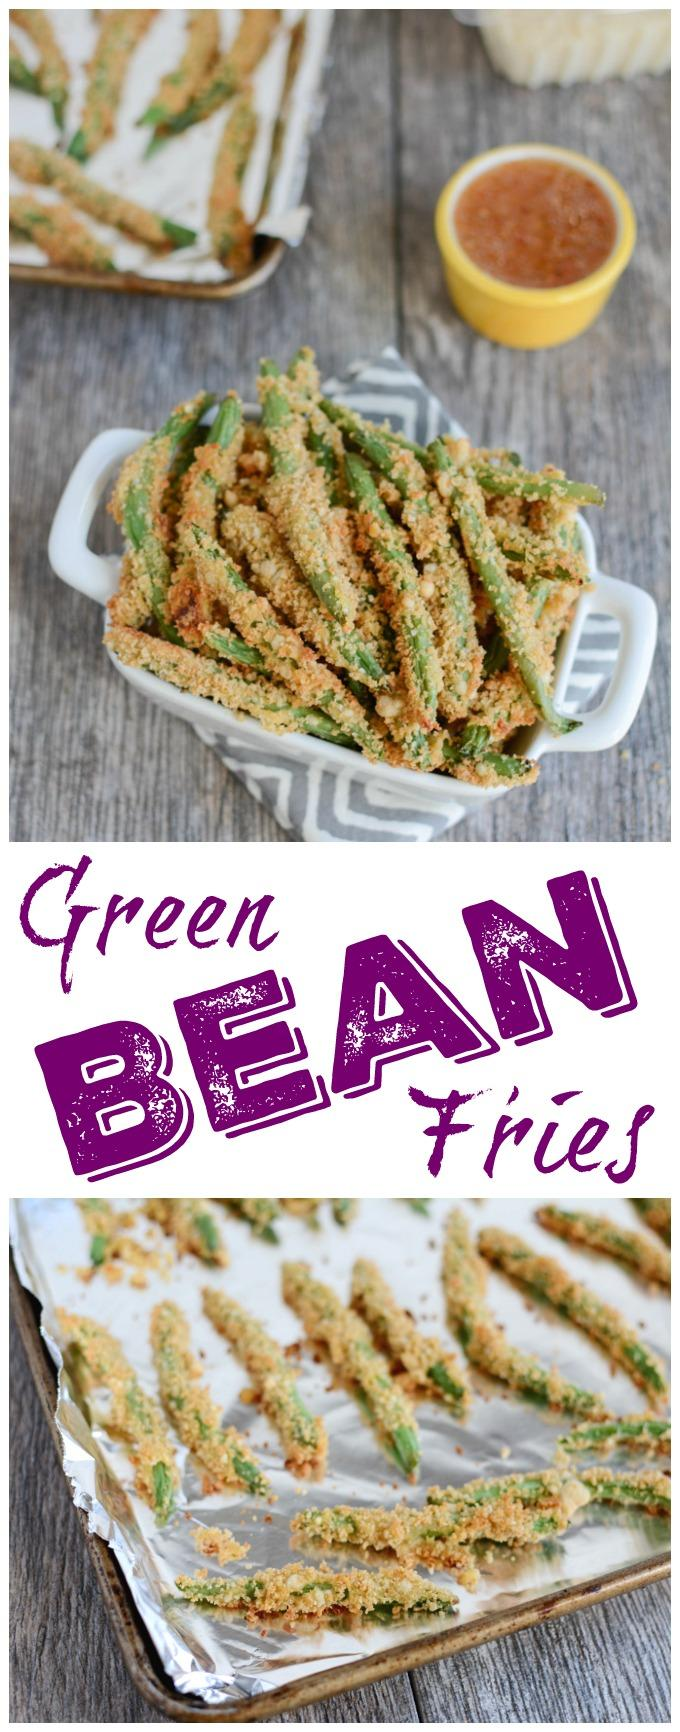 This recipe for Crispy Green Bean Fries is a fun way to change things up at dinner! They're easy to make and kid-friendly too!